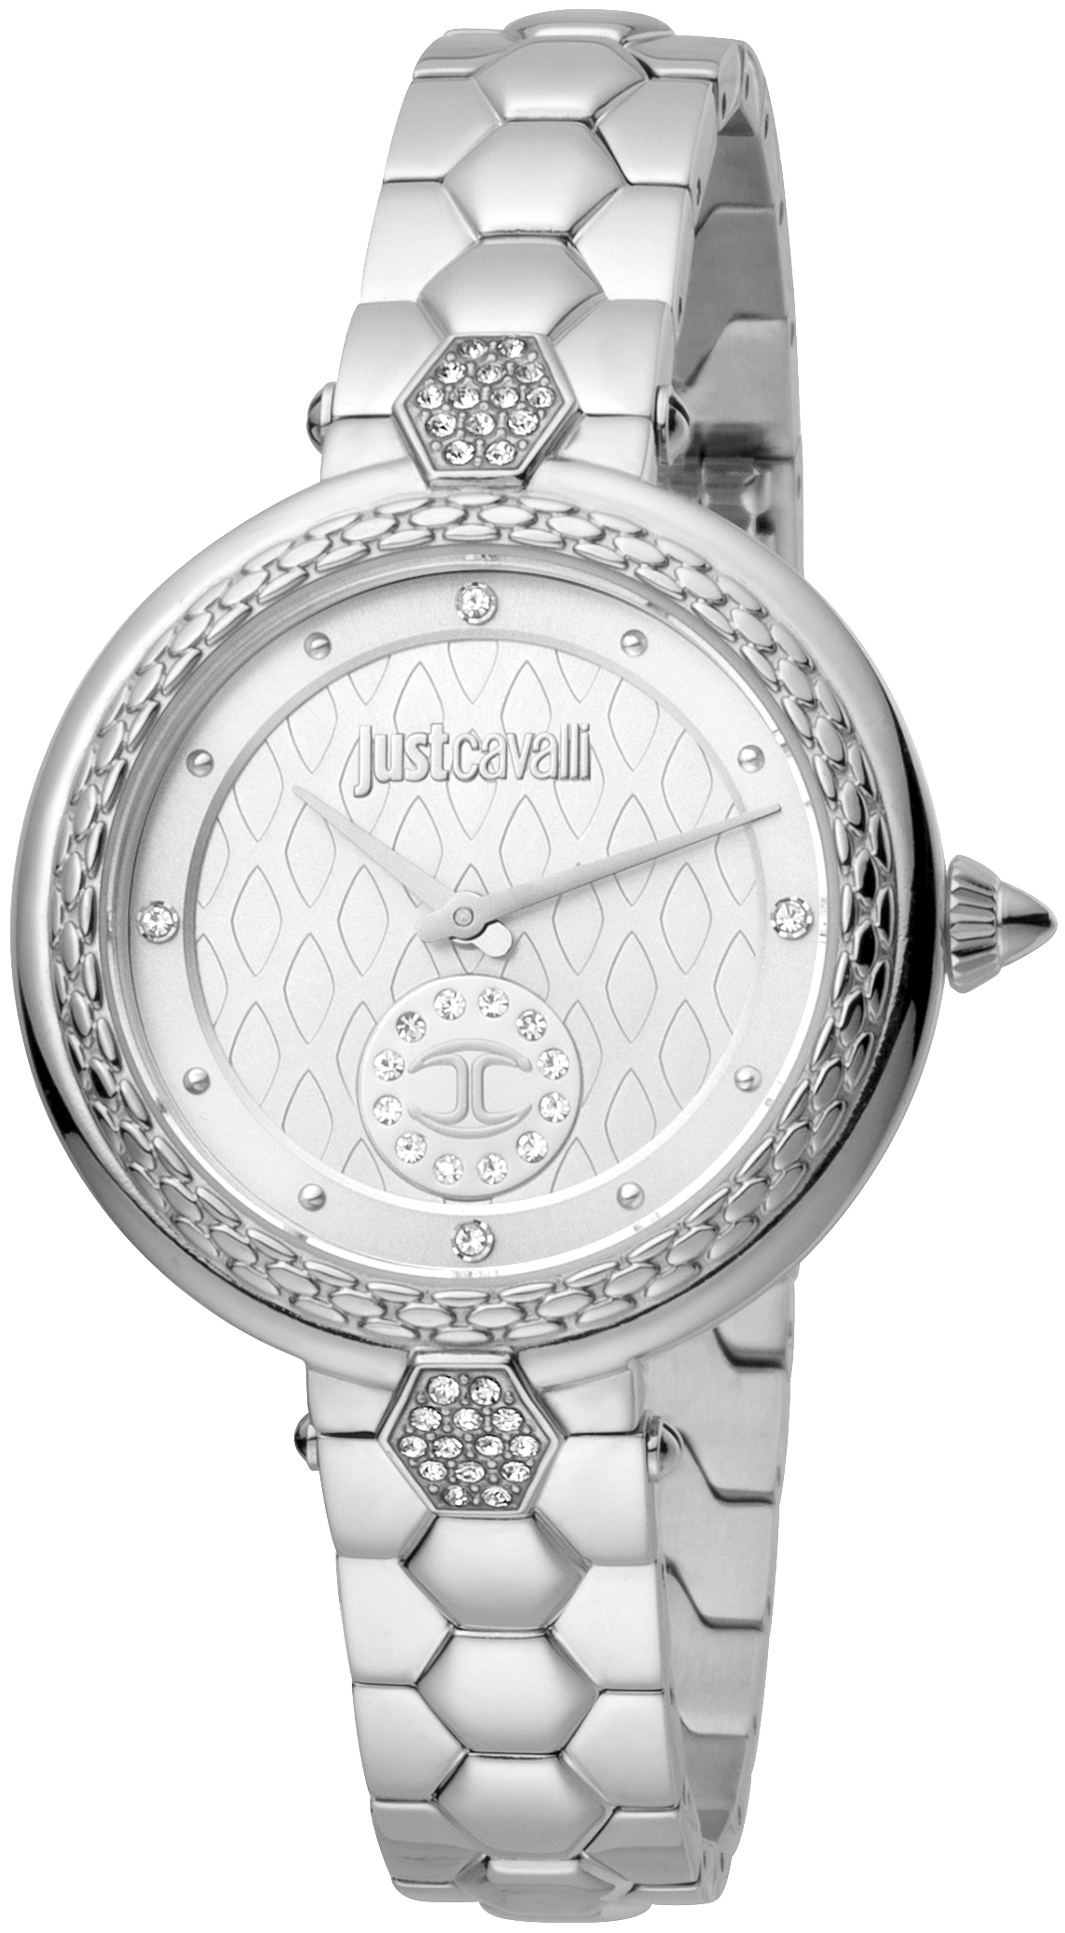 Just Cavalli 99999 Dameur JC1L128M0055 Sølvfarvet/Stål Ø34 mm